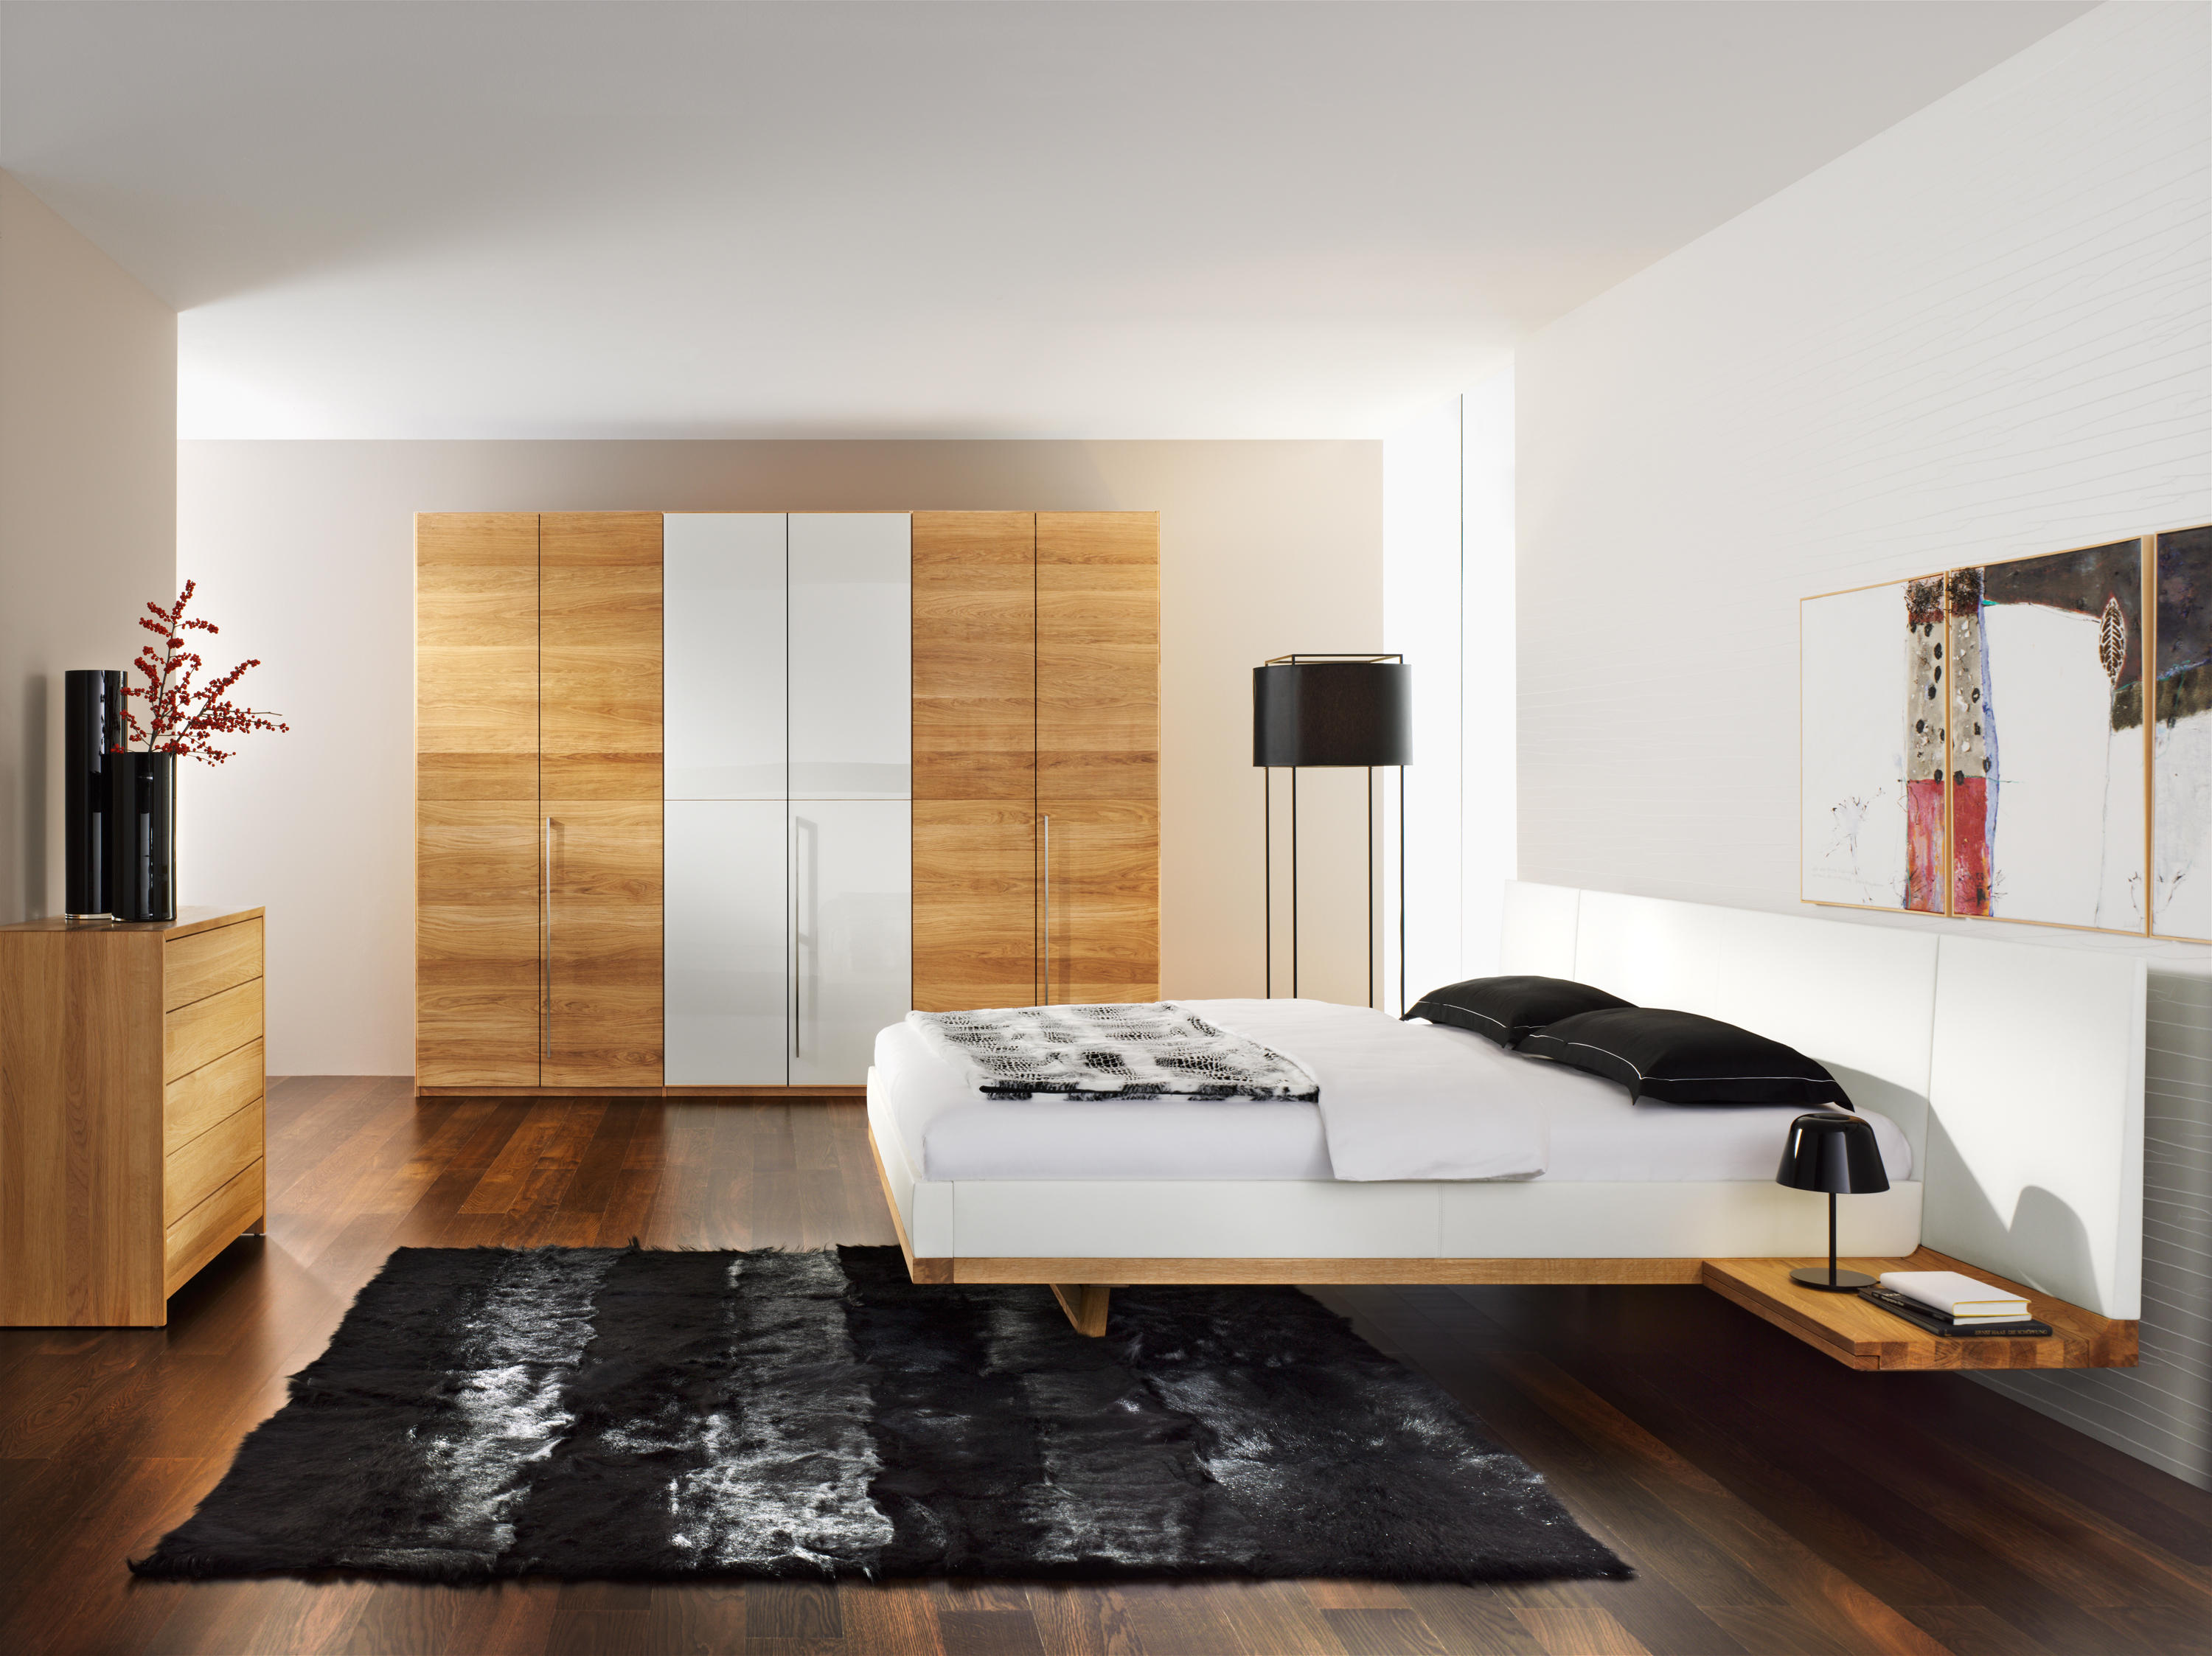 riletto bed - double beds from team 7 | architonic - Team 7 Schlafzimmer